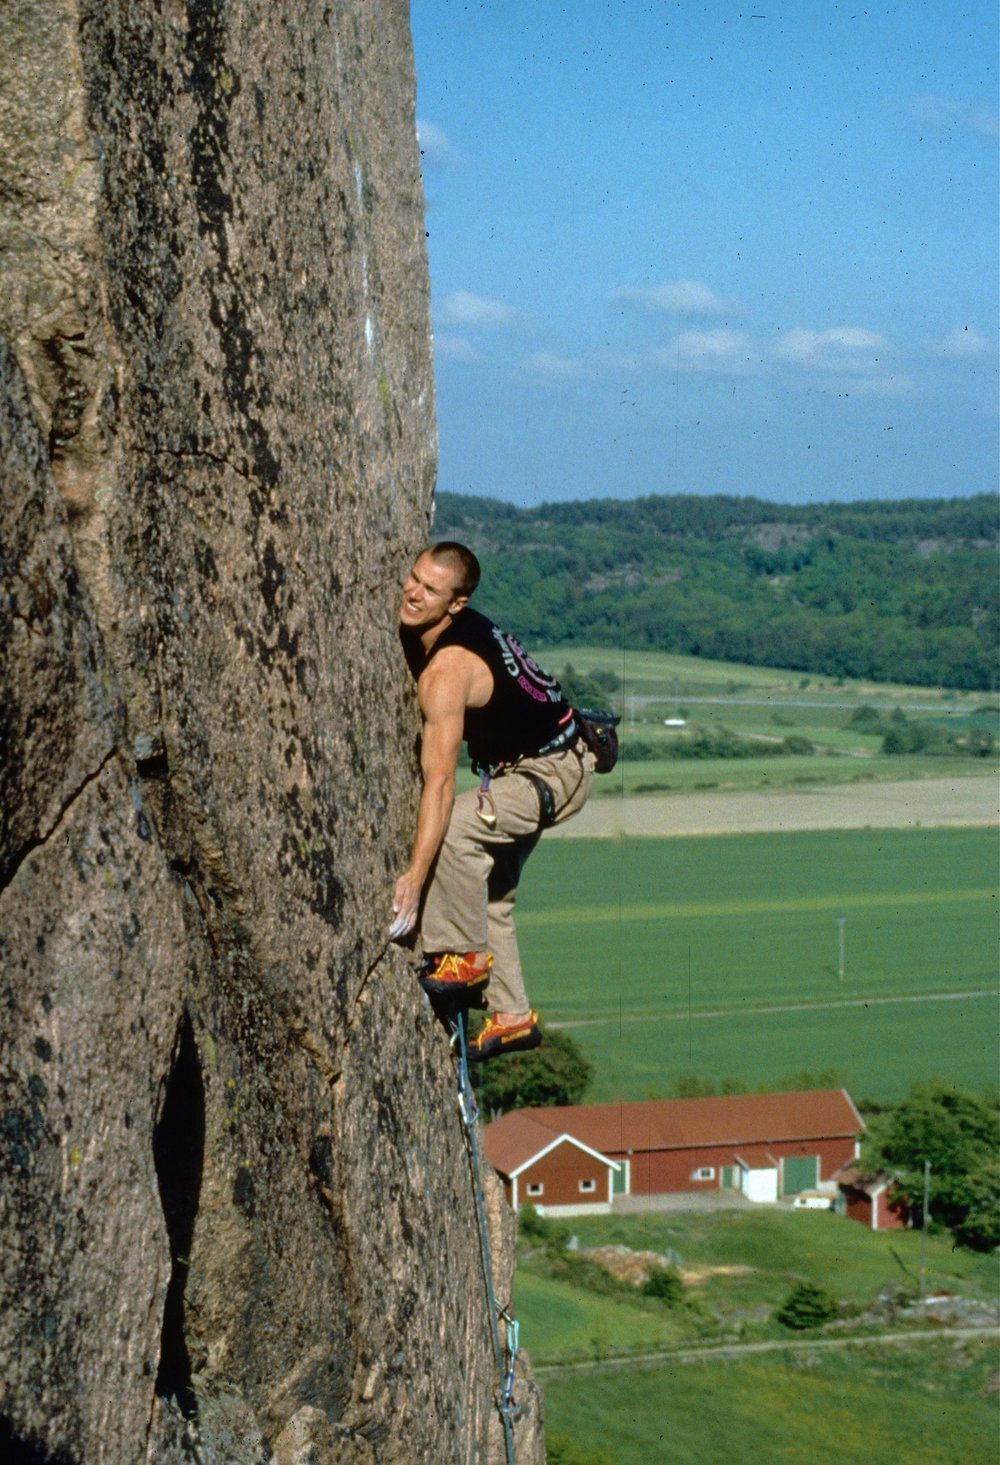 Post Modern Arete E6 6c, Halle. First ascent in 1999.  Photo: Gresham collection